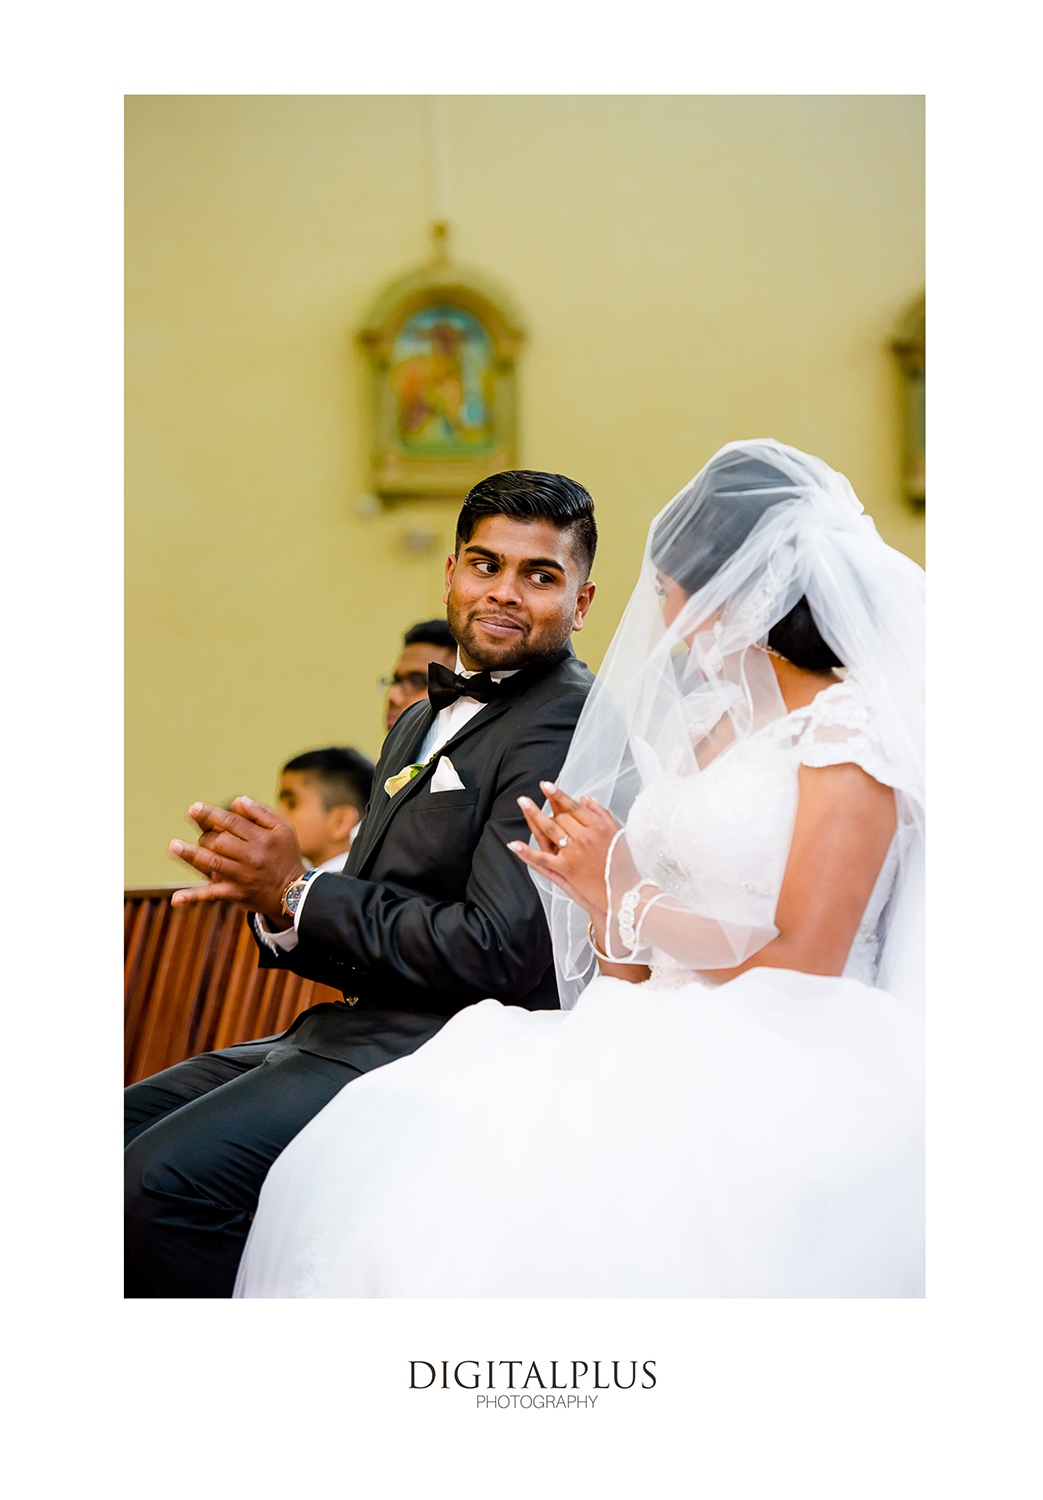 Sharmi&Koki(ChristianWED2015)---TEASER17.jpg